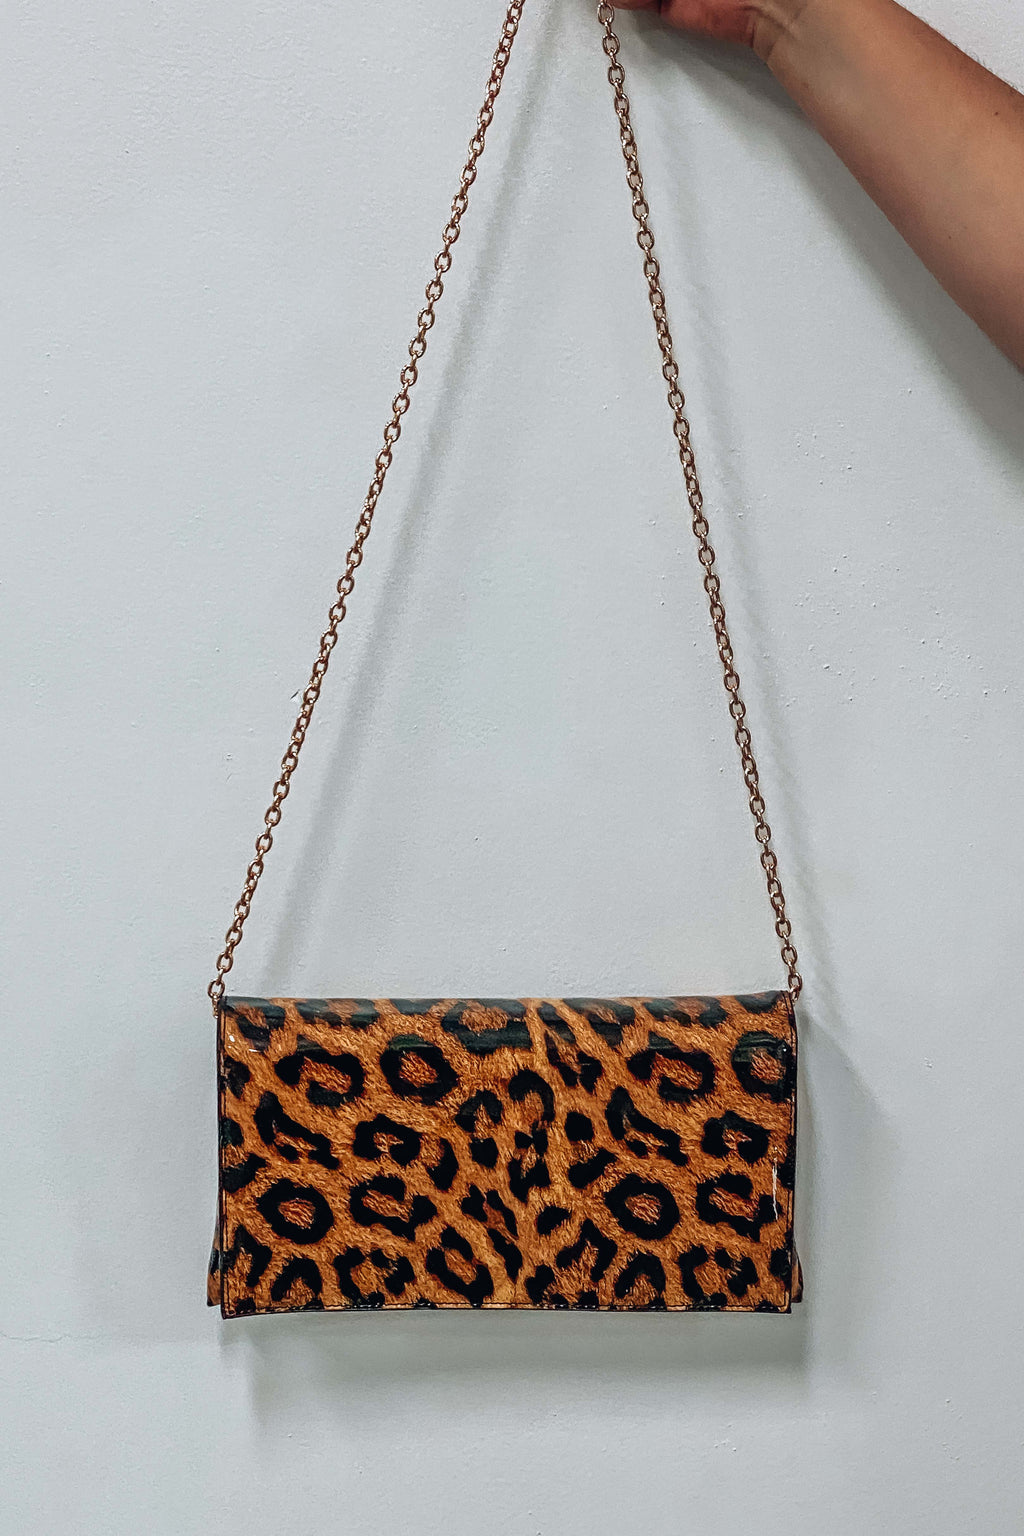 Recharged & Ready Purse: Cheetah